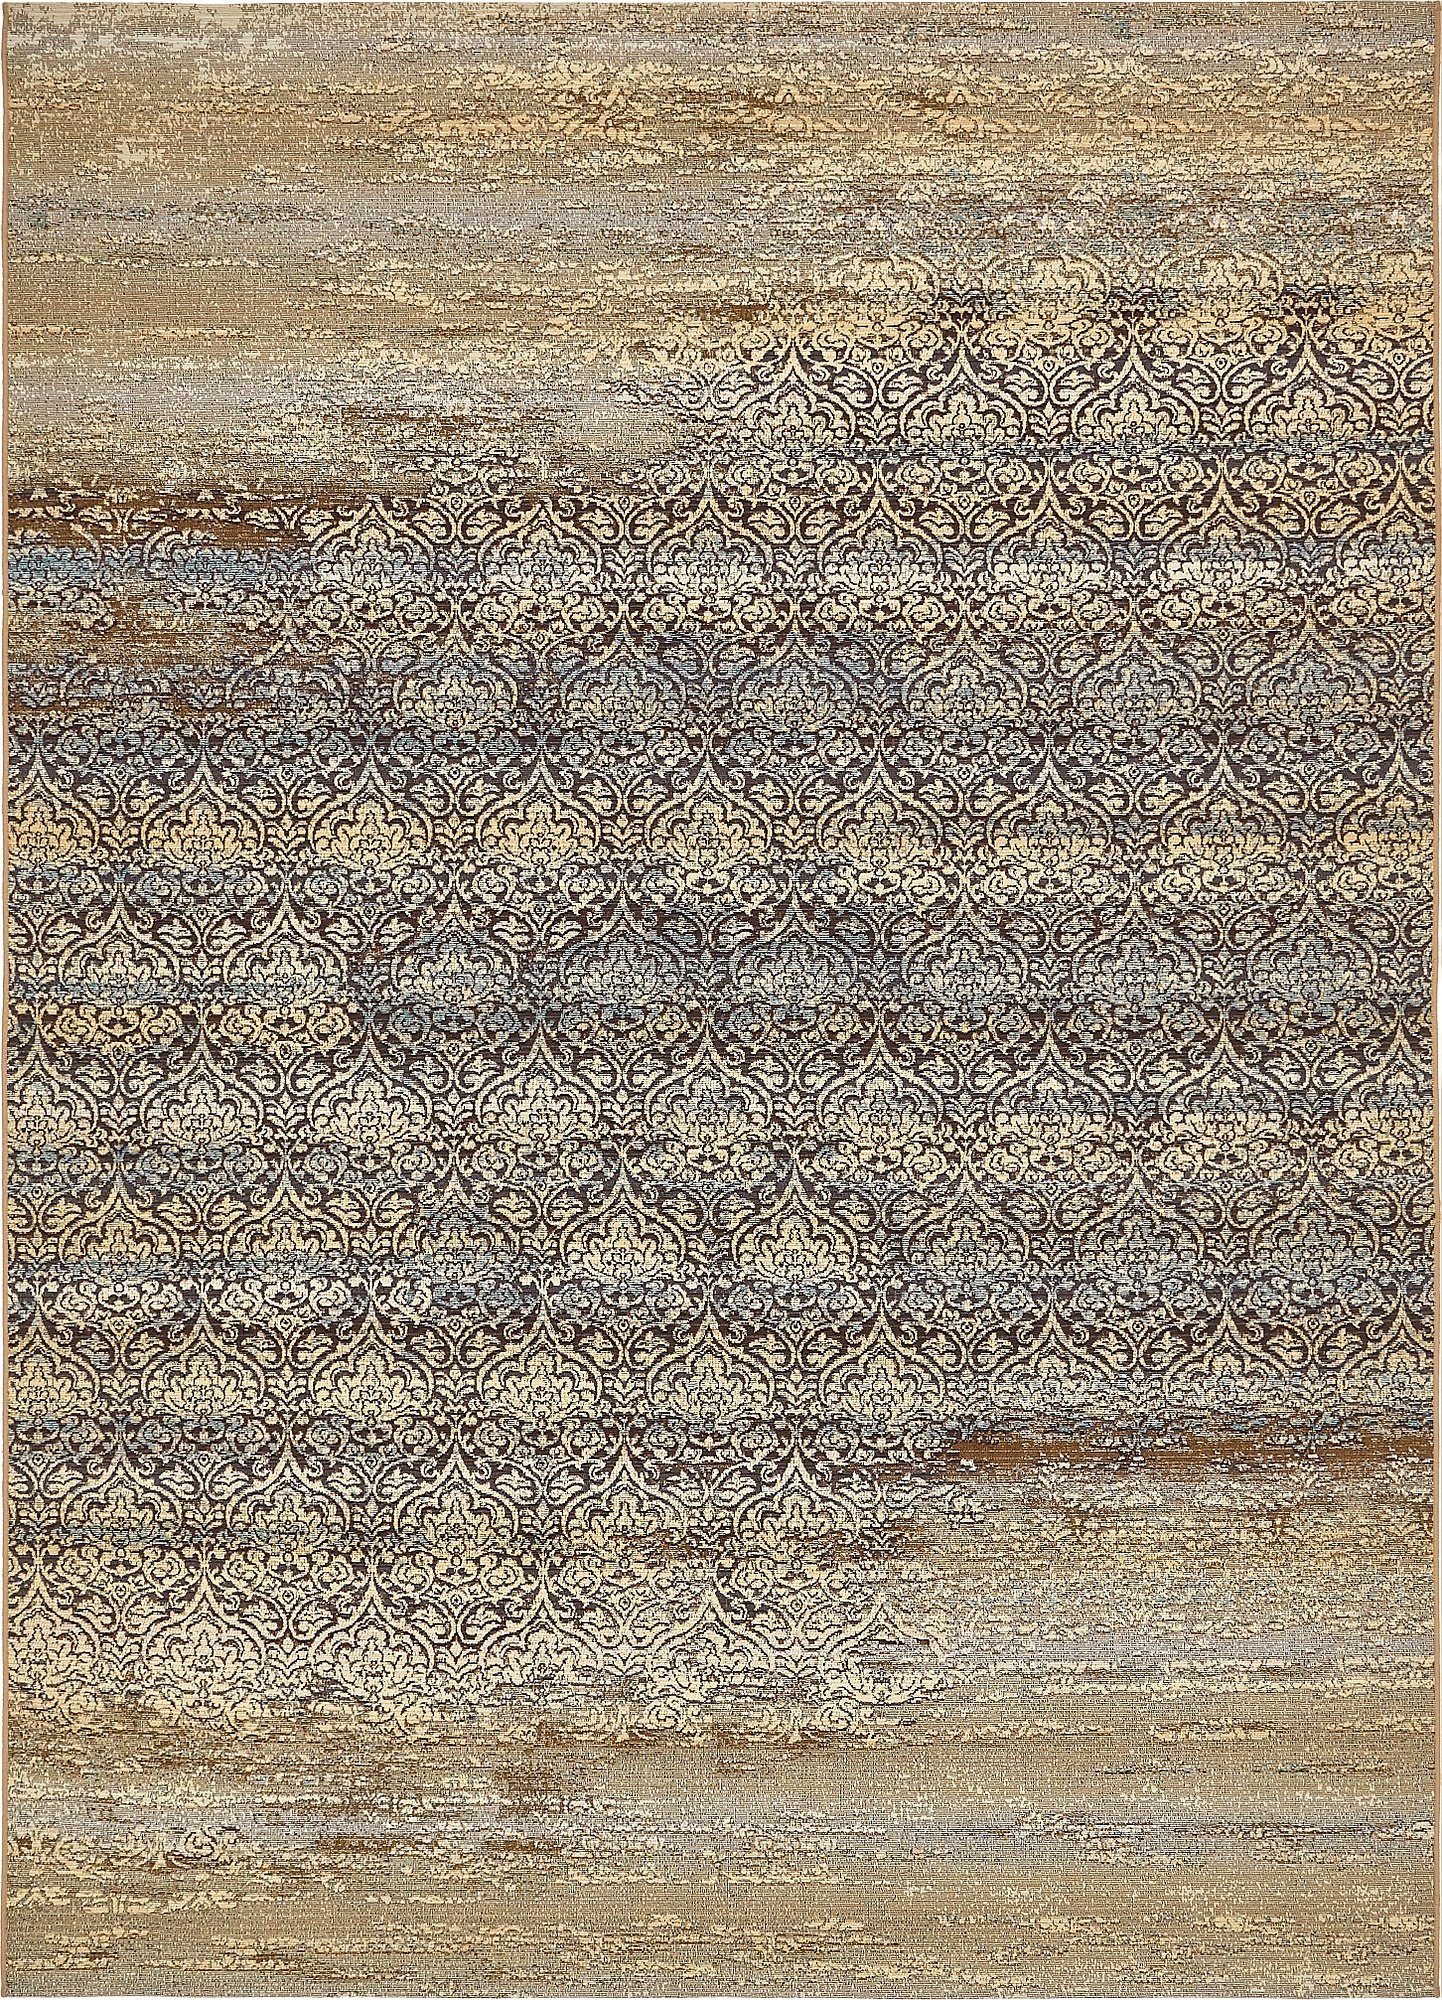 Unique Loom Eden Outdoor Collection Beige 8 x 11 Area Rug (8' x 11' 4'') by Unique Loom